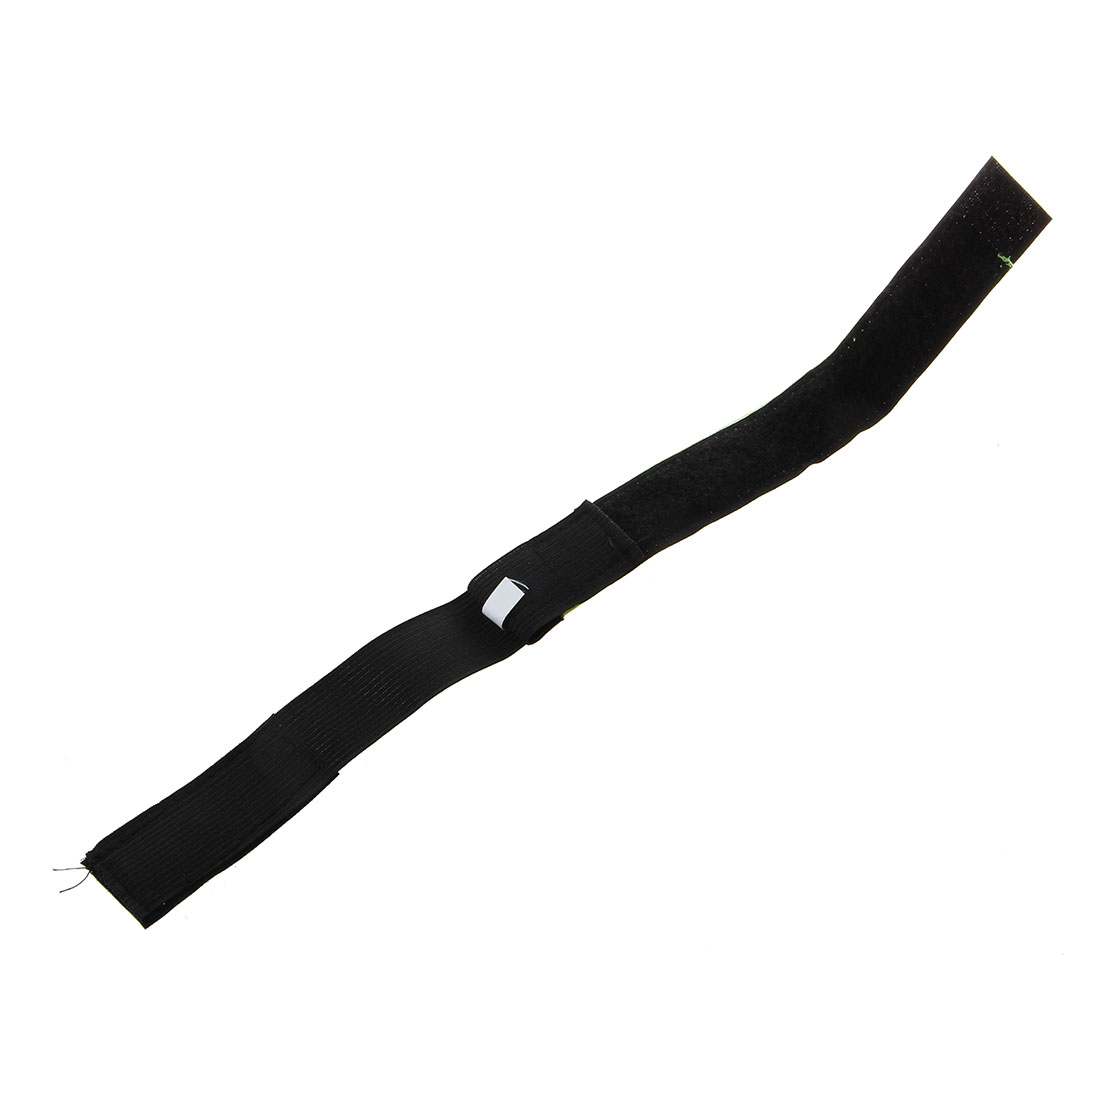 2 X Reflective Band Arm Leg Strap Belt 4 Led Light Cycling Running Jogging Back To Search Resultssports & Entertainment